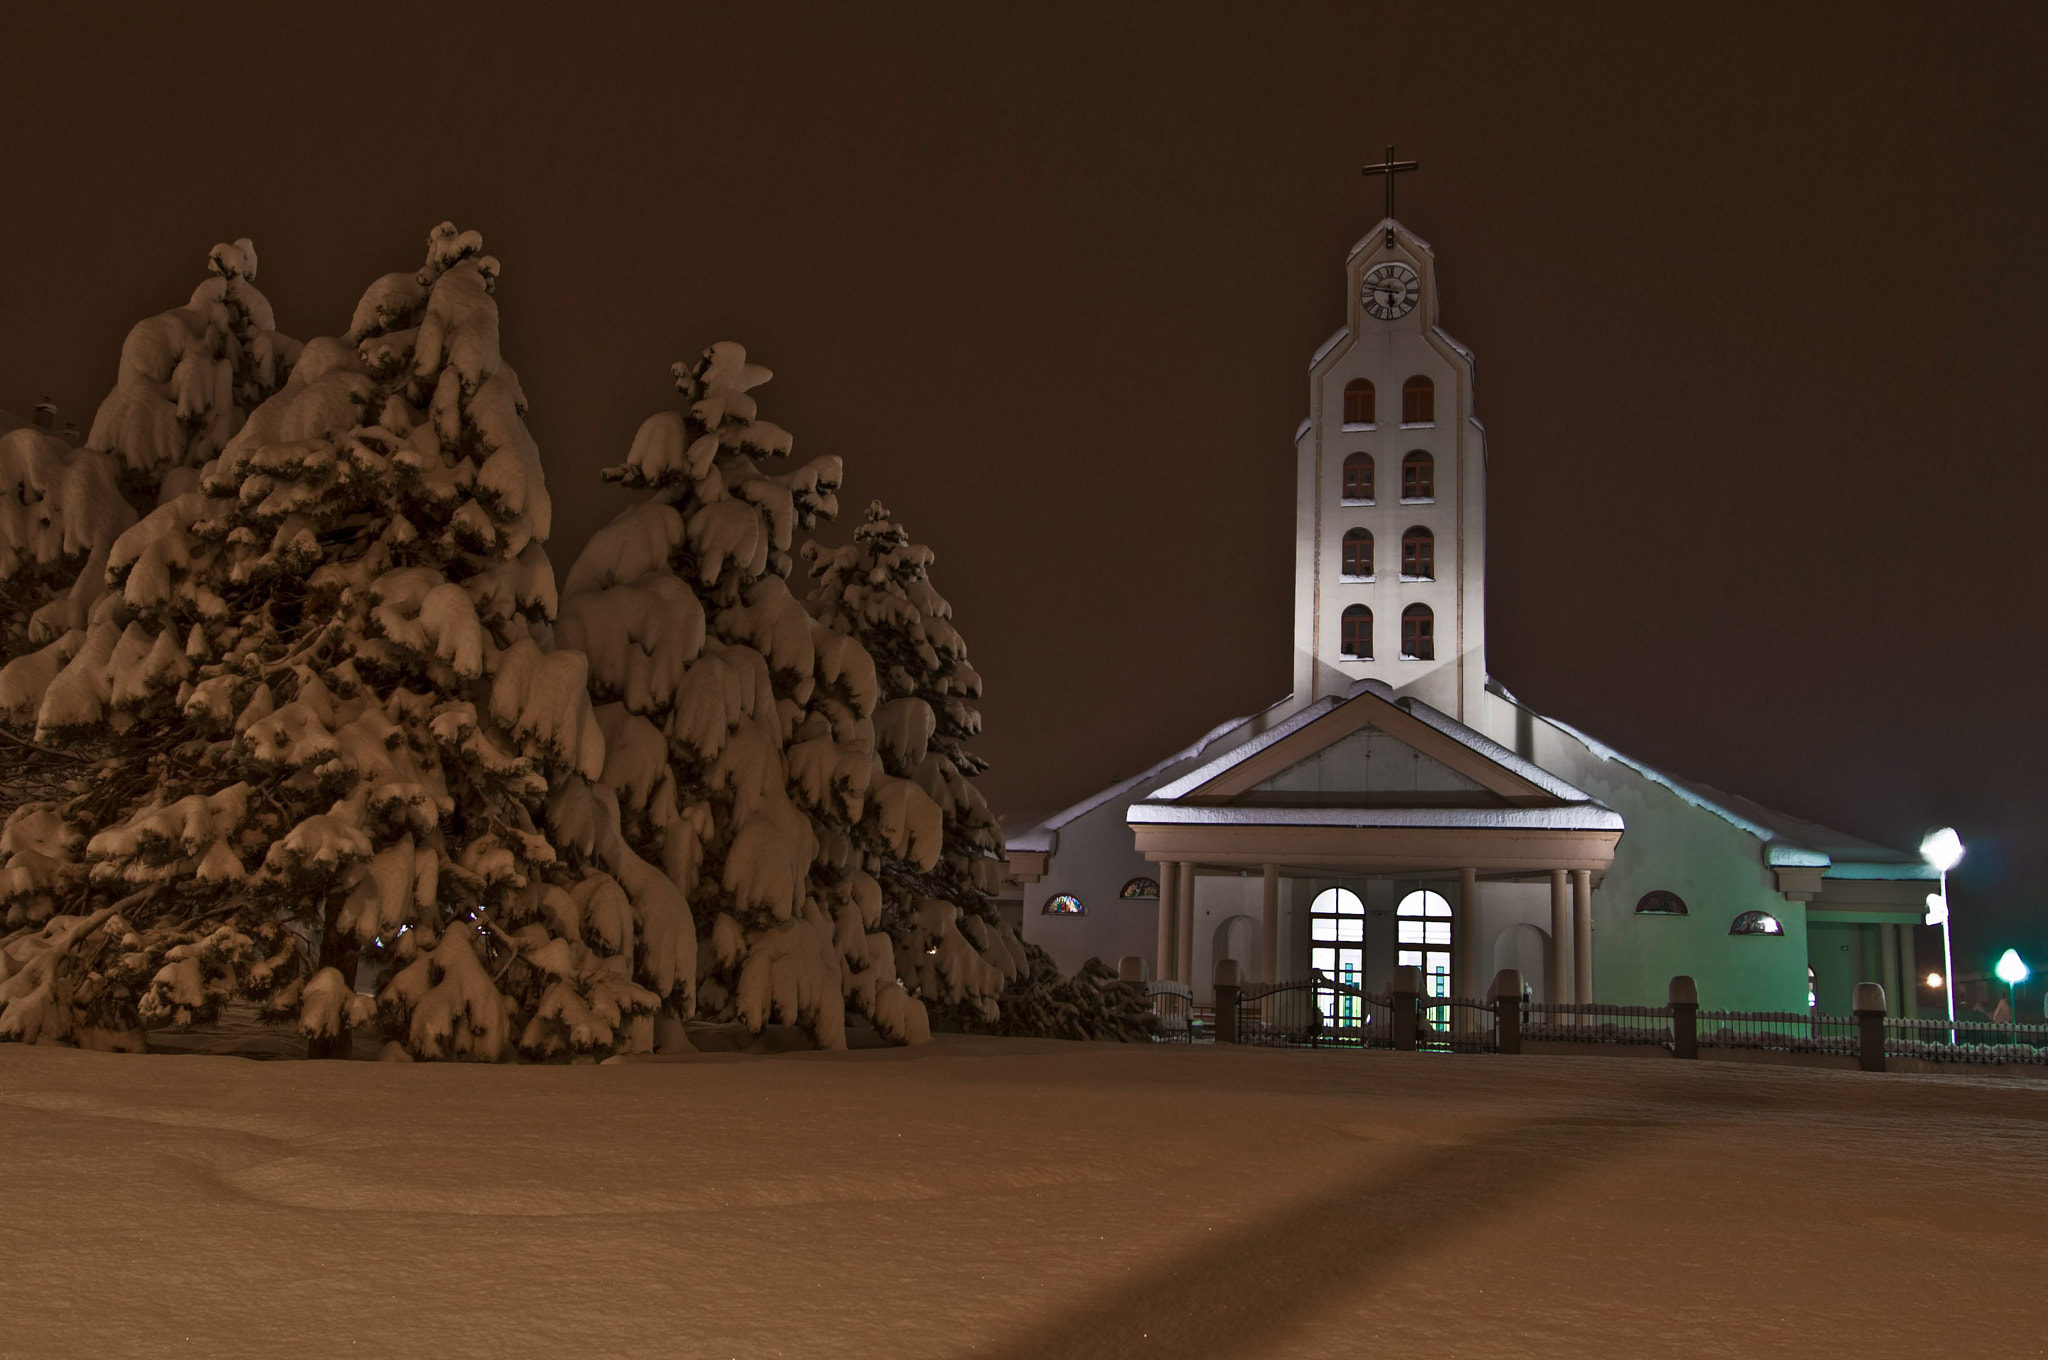 Photograph city (06) - church by Vlado Ferencic on 500px